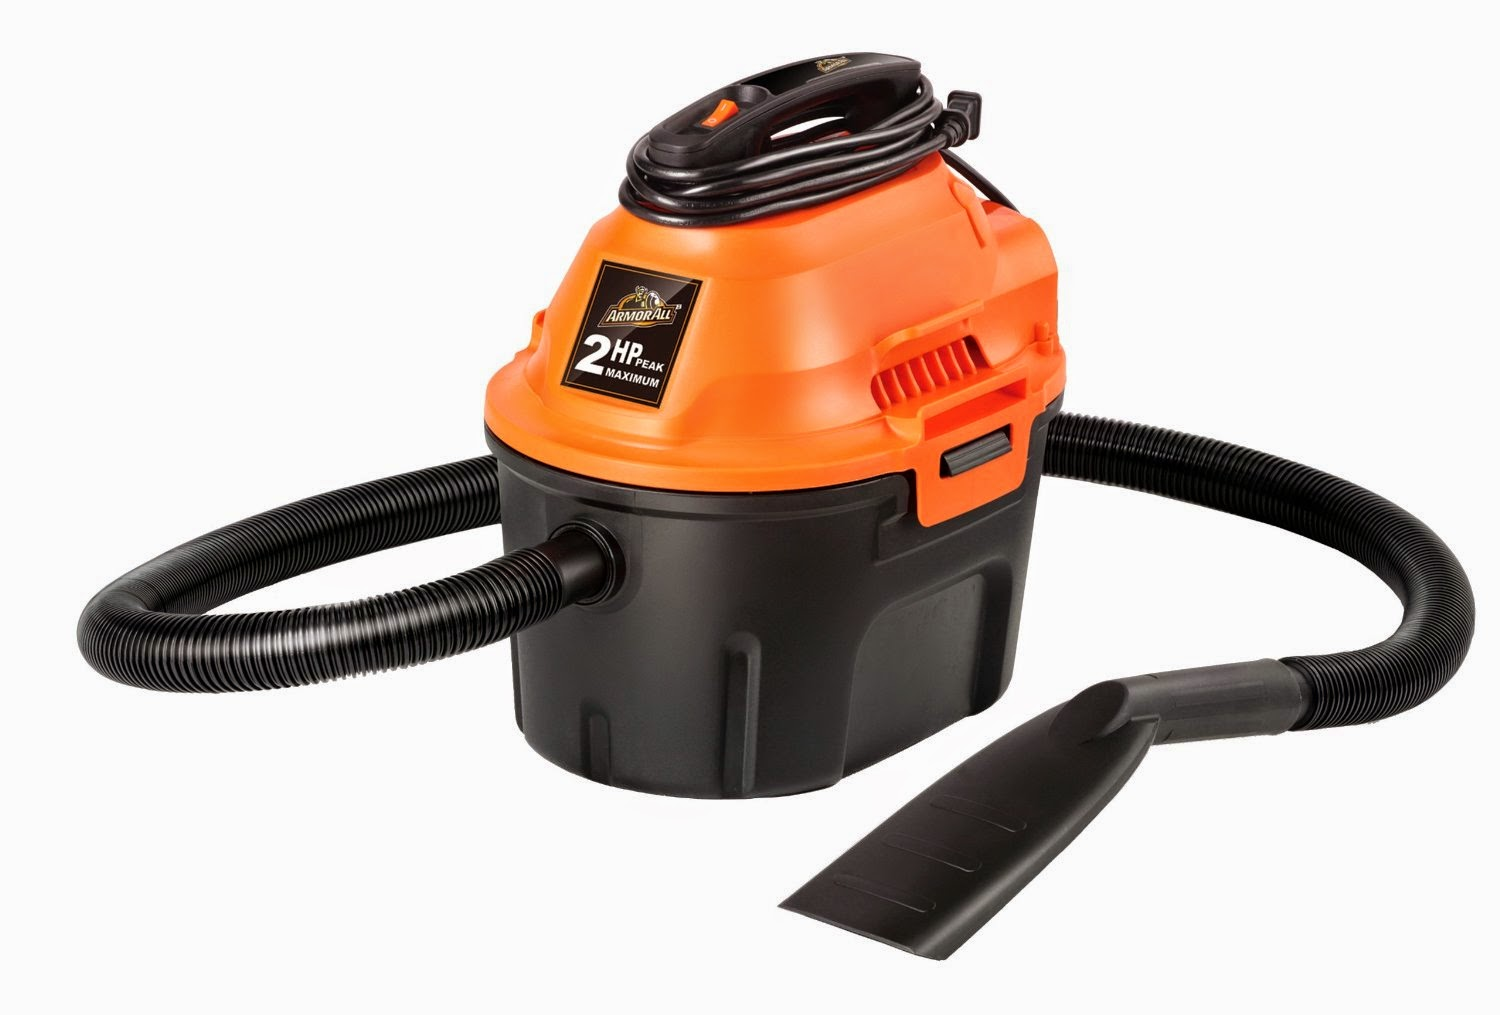 1-Gallon Shop-Vac Hang Up Mini Vacuum - Walmart.com